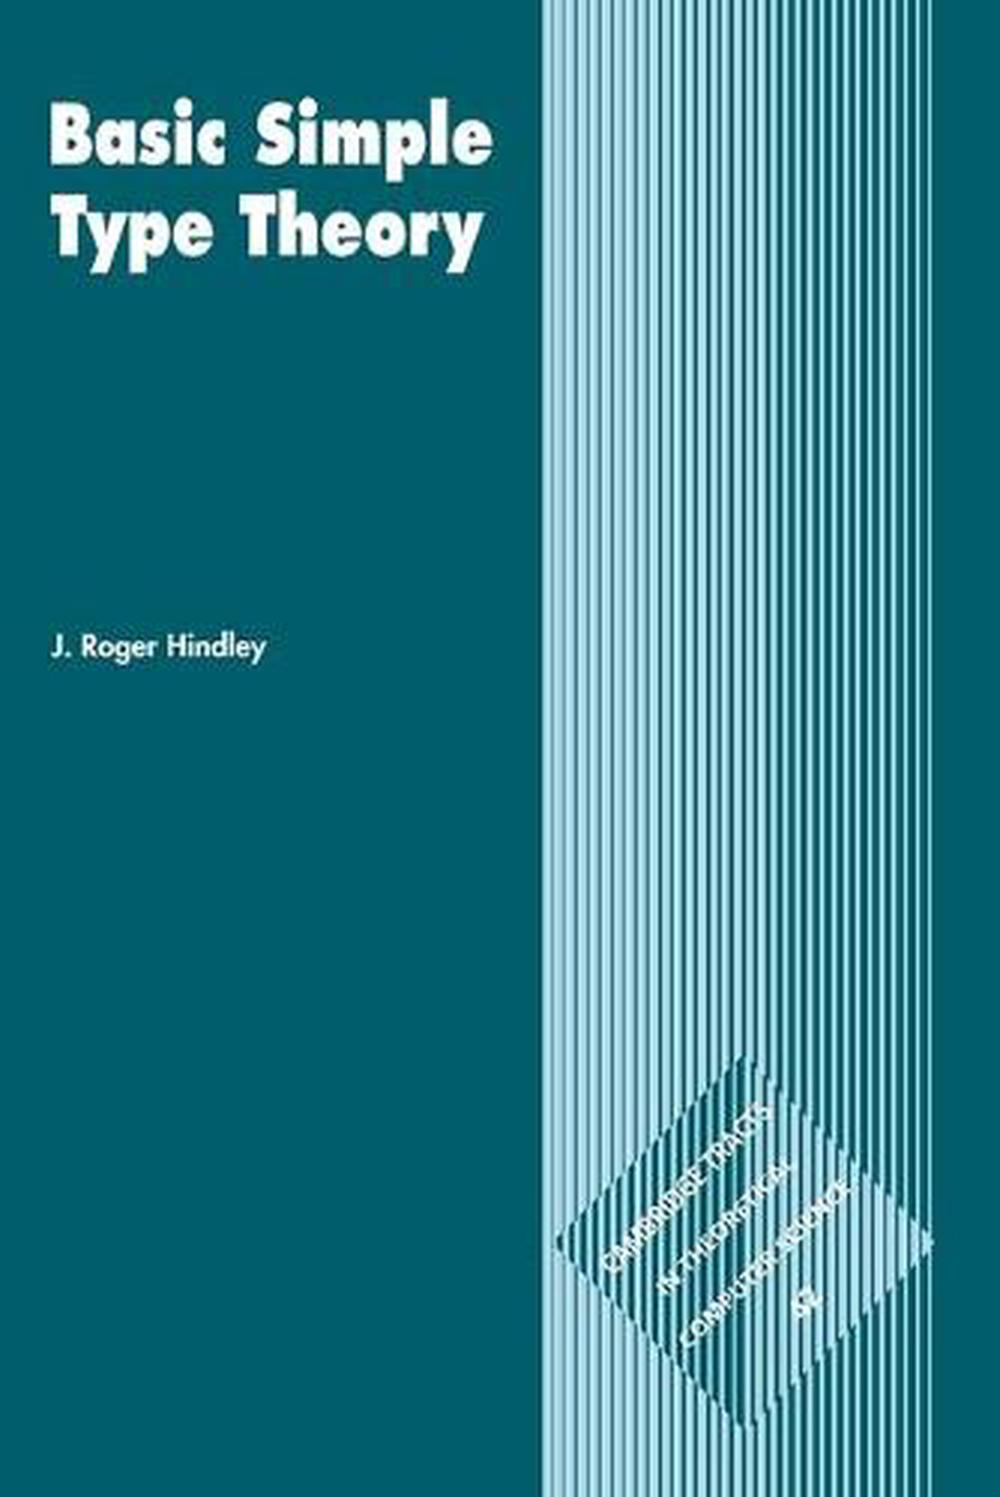 Basic Simple Type Theory by J. Roger Hindley, ISBN: 9780521054225